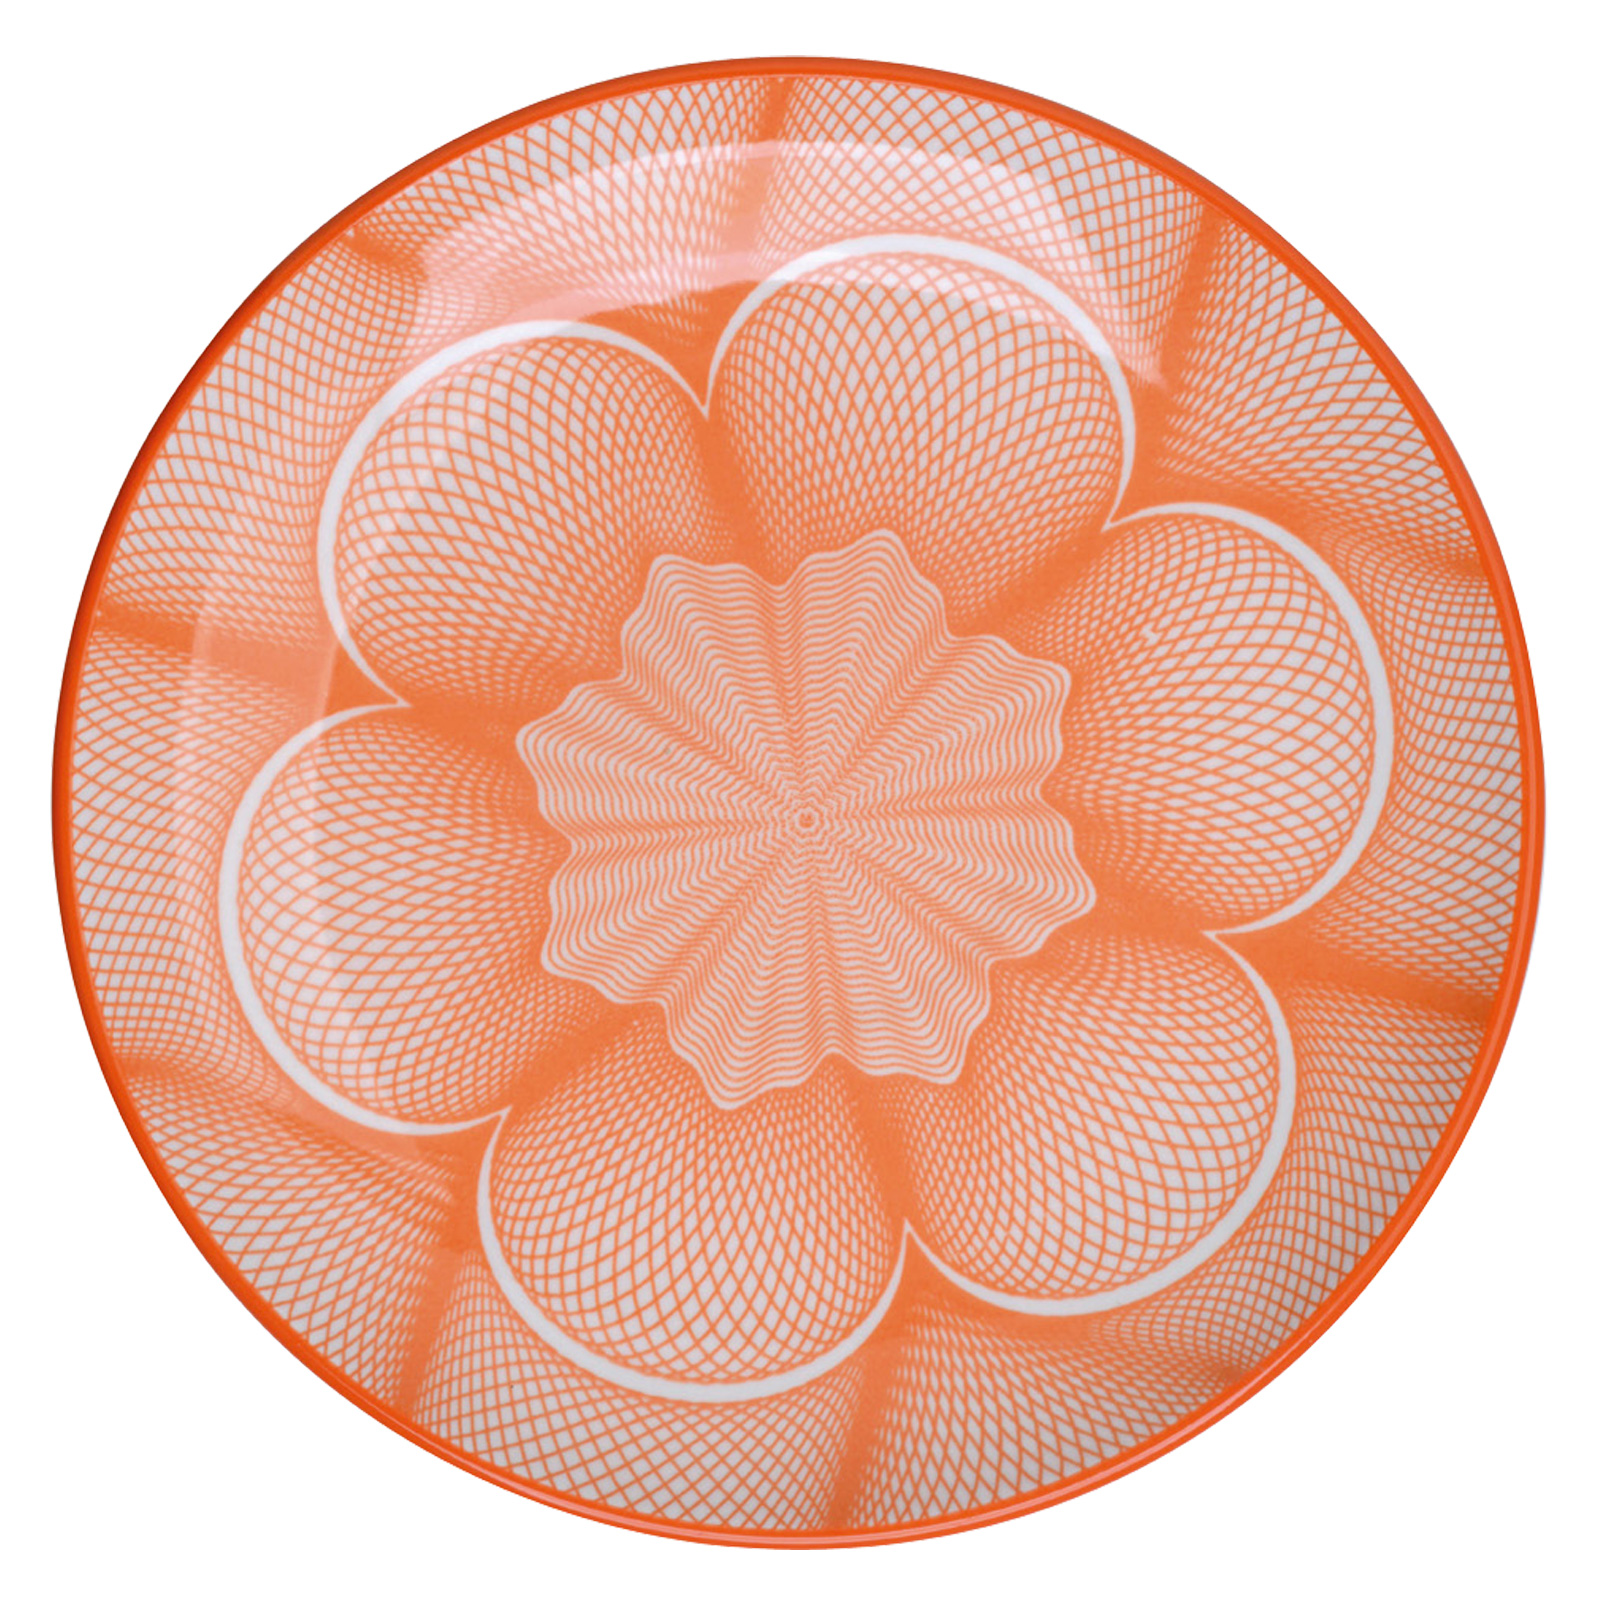 Set of 4 Spyro Plates Orange by BIA